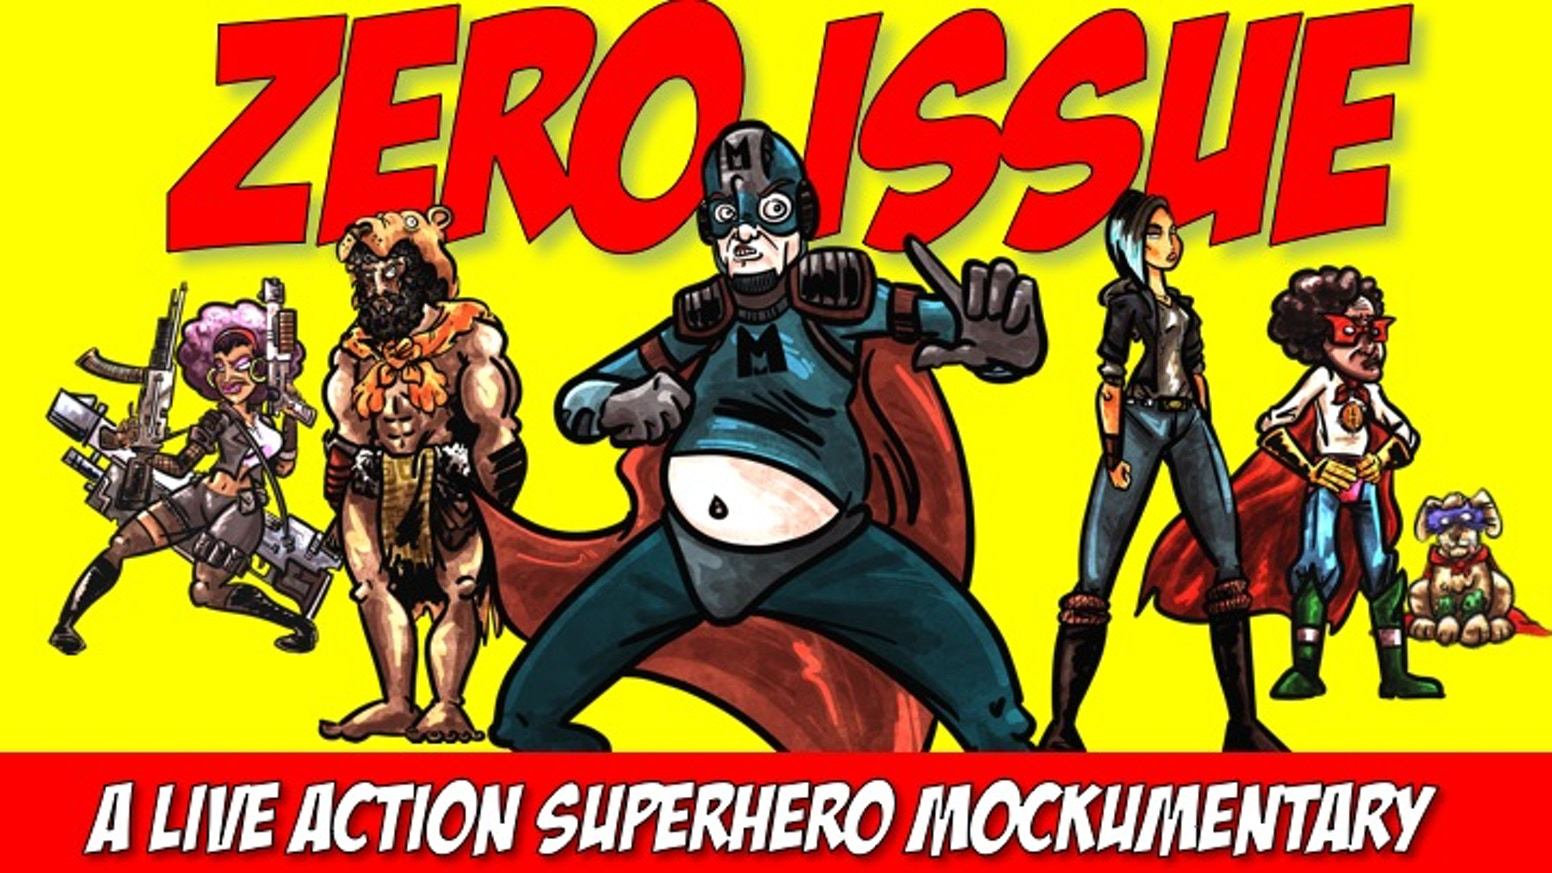 Zero Issue: A Superhero Mockumentary by New York Picture